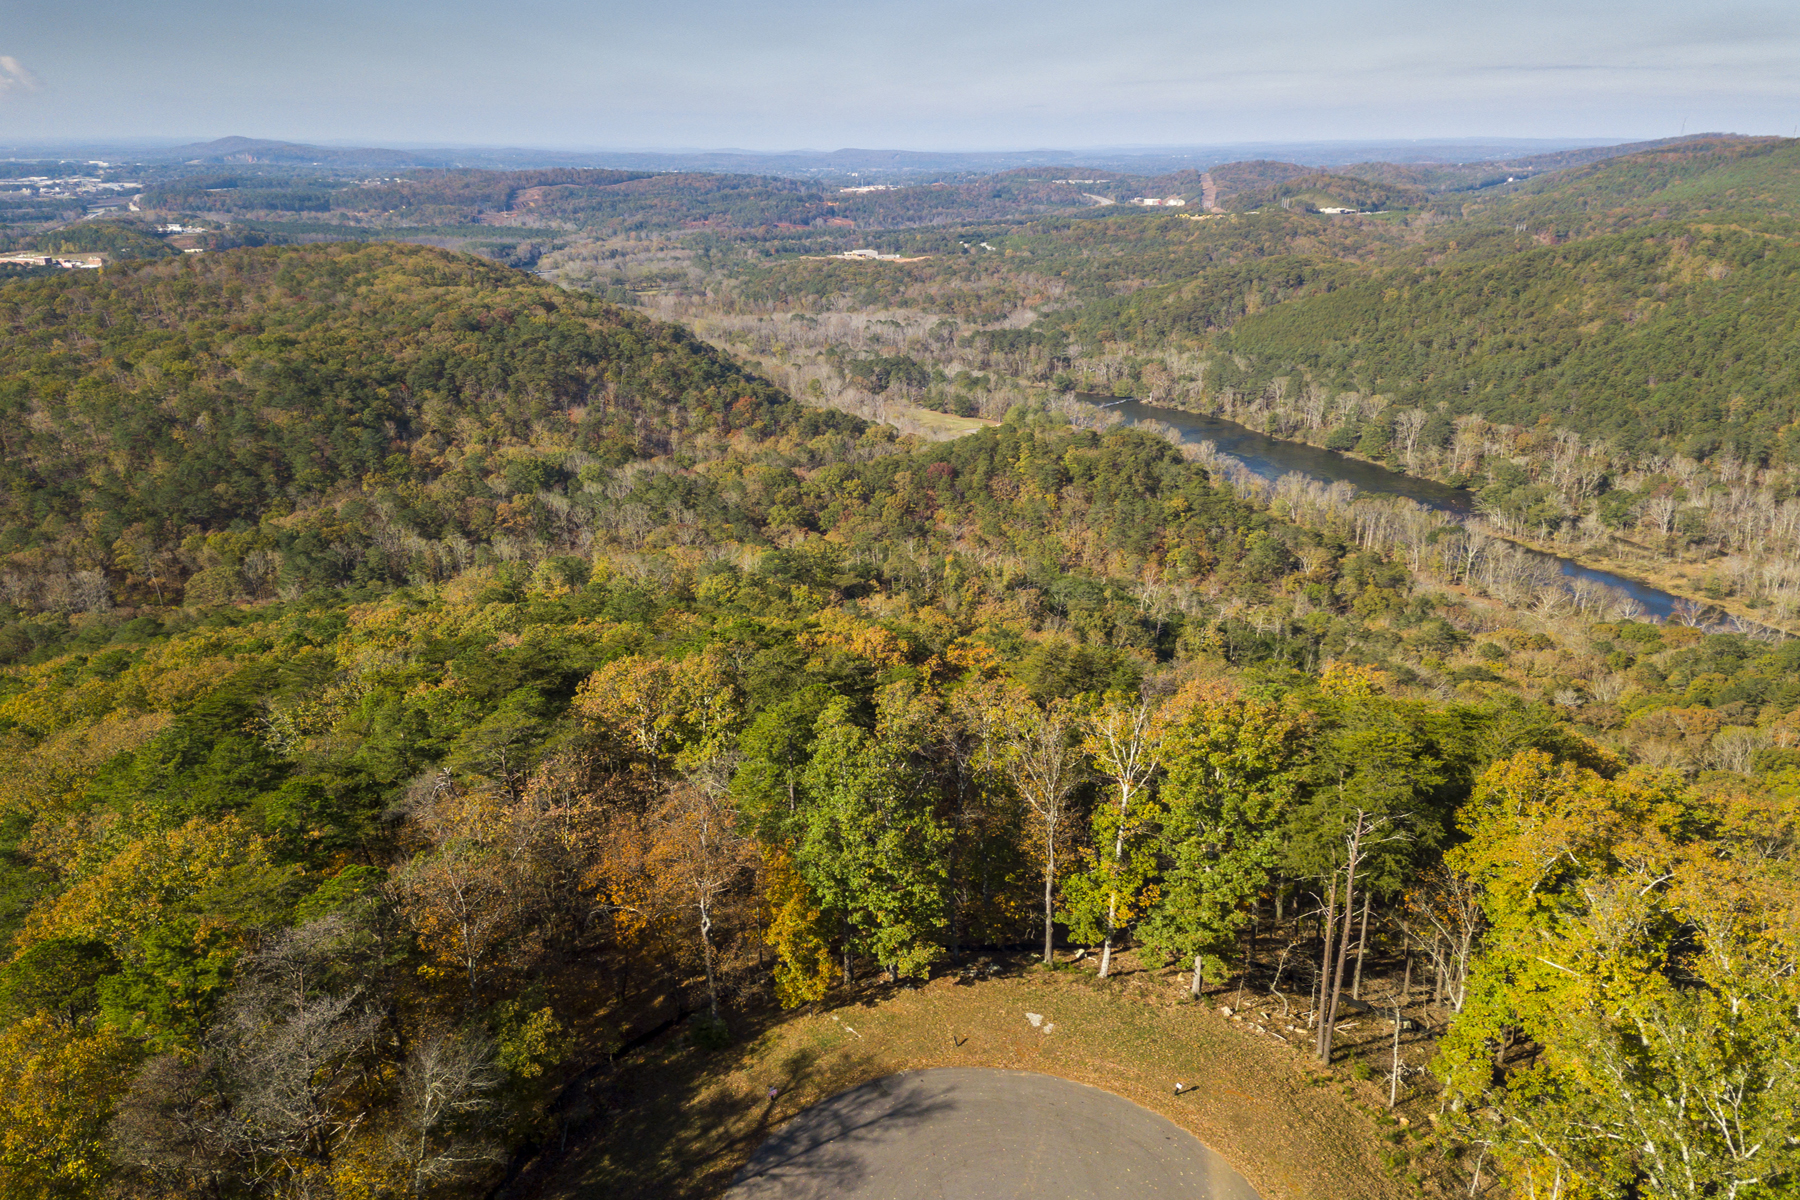 Land for Sale at Fabulous 2+ Acre Cul-de-sac Lot with Big Views of Lake Allatoona and Mountains 110 Somerset Lane, Cartersville, Georgia, 30121 United States